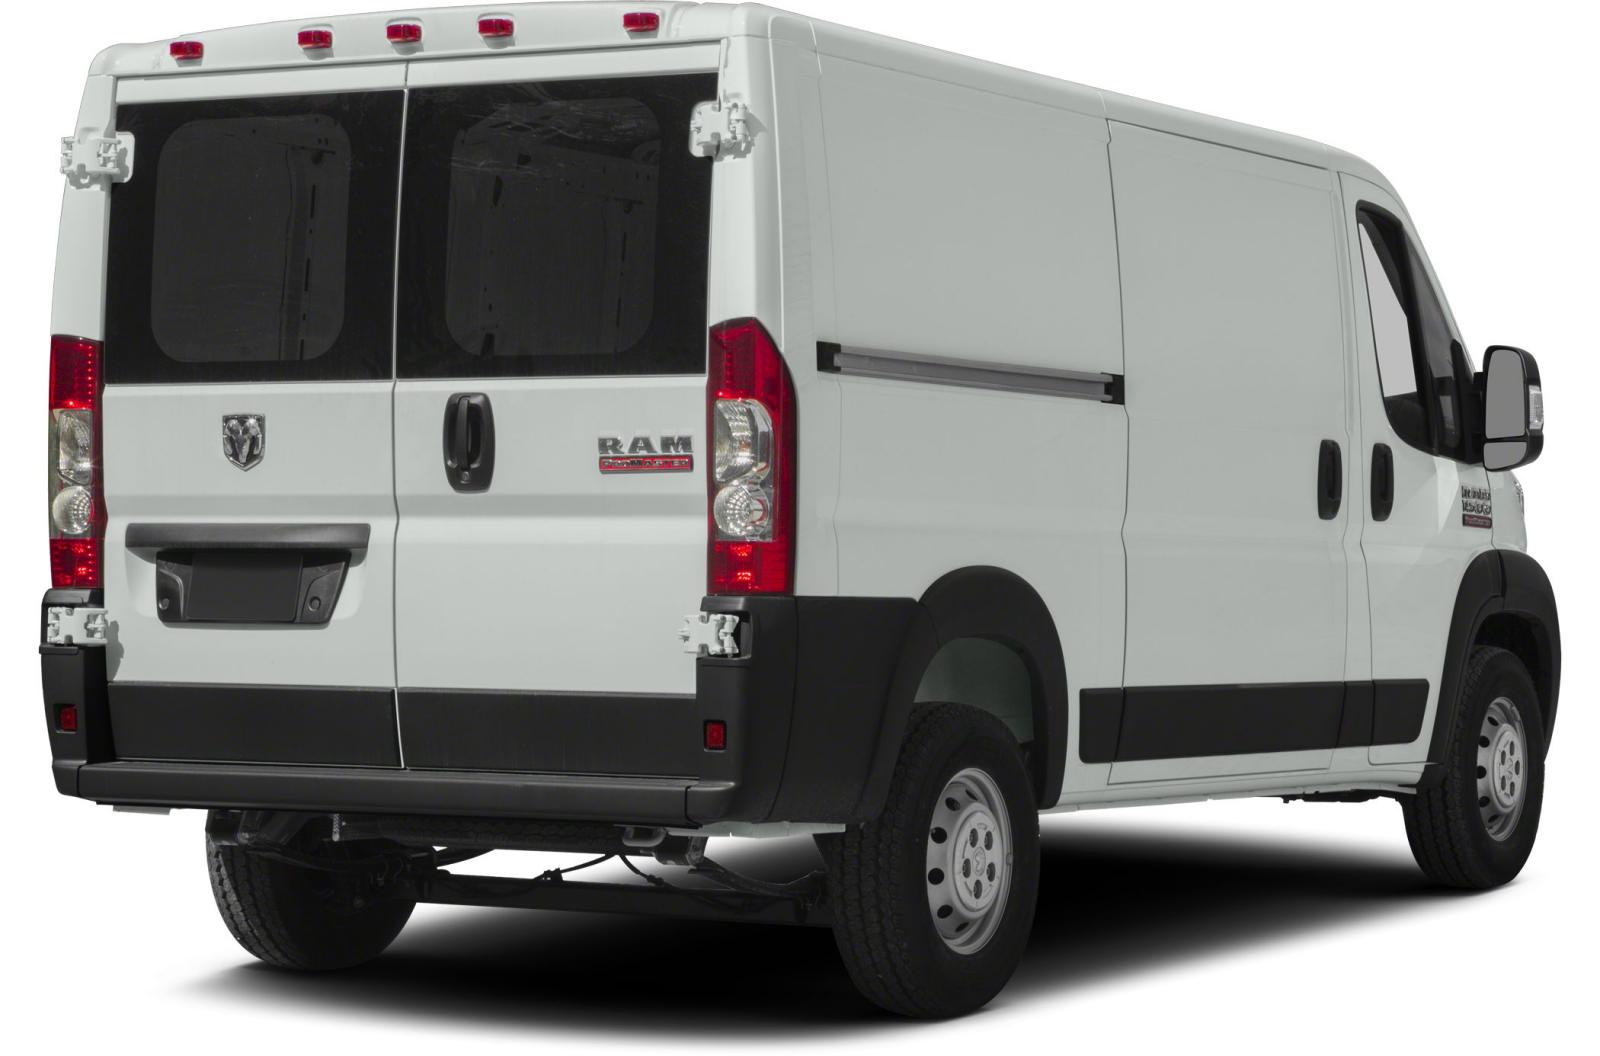 2014 ram promaster cargo van information and photos zombiedrive. Black Bedroom Furniture Sets. Home Design Ideas